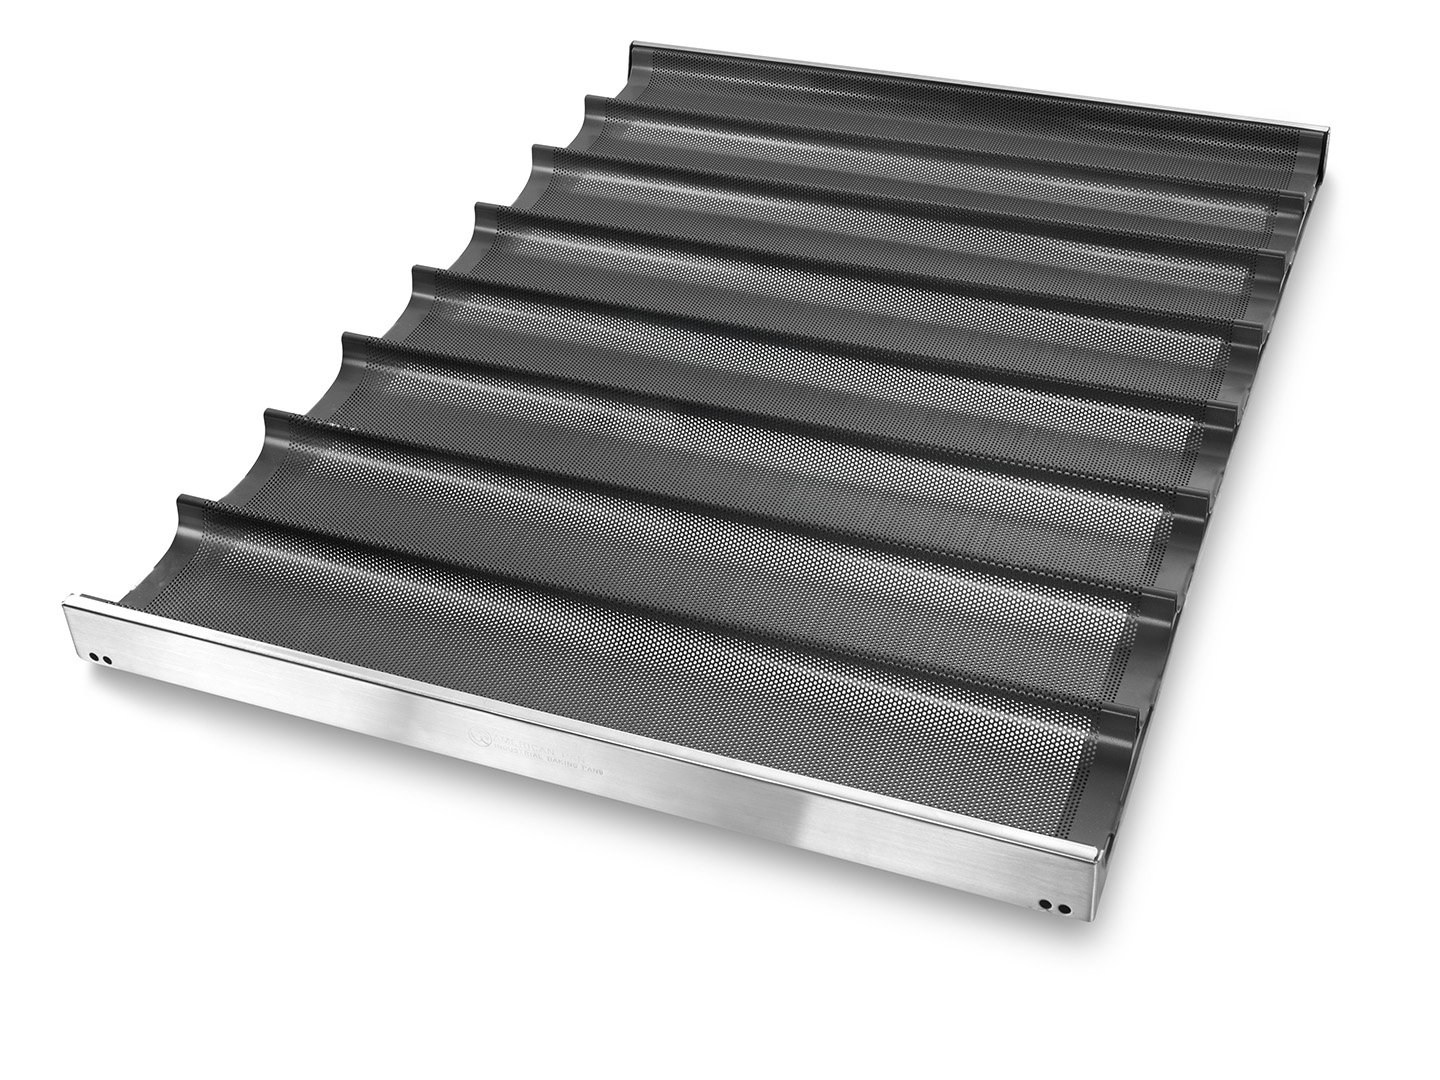 8 Channel Baguette Tray - DuraShield® Coating